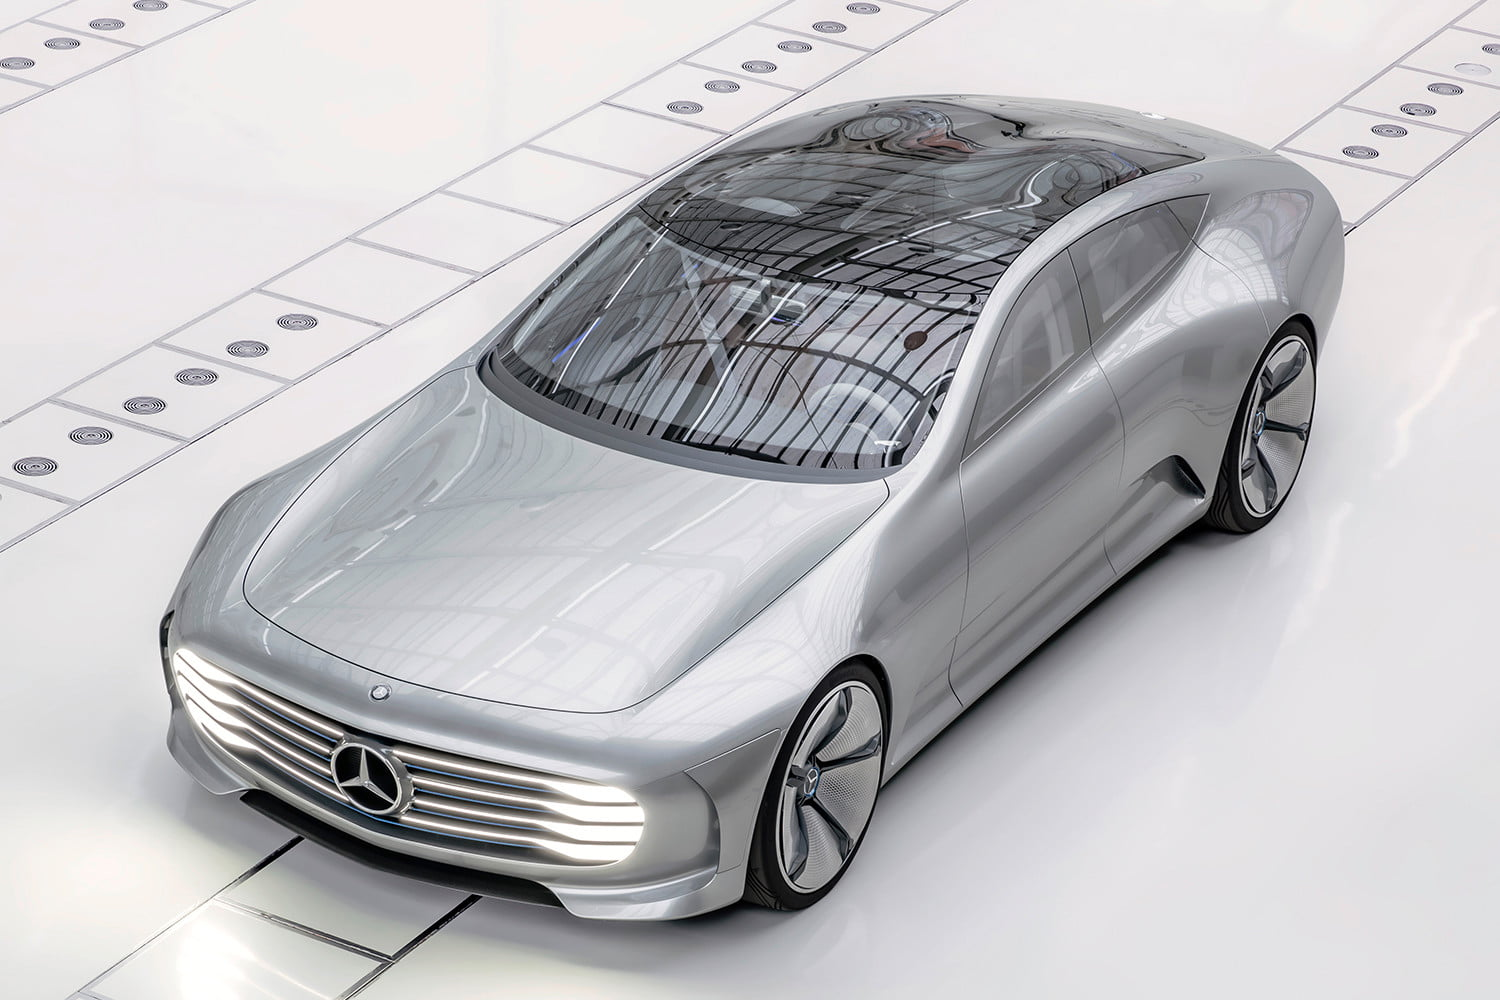 top 5 concept cars of 2015 opinion pictures specs mercedes benz iaa hard 14